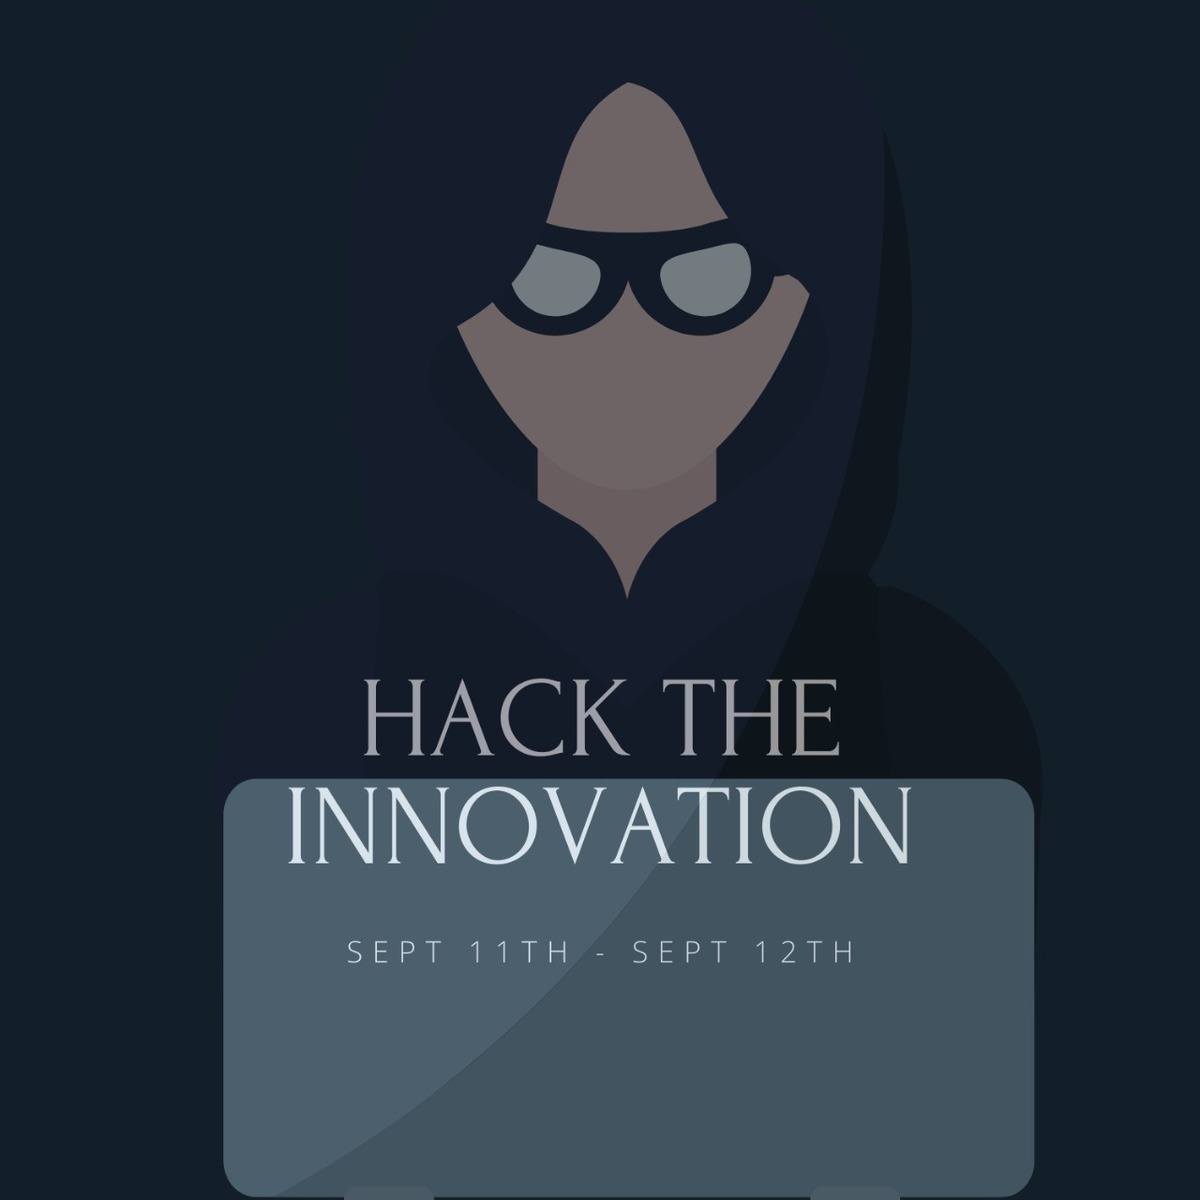 Hack the Innovation